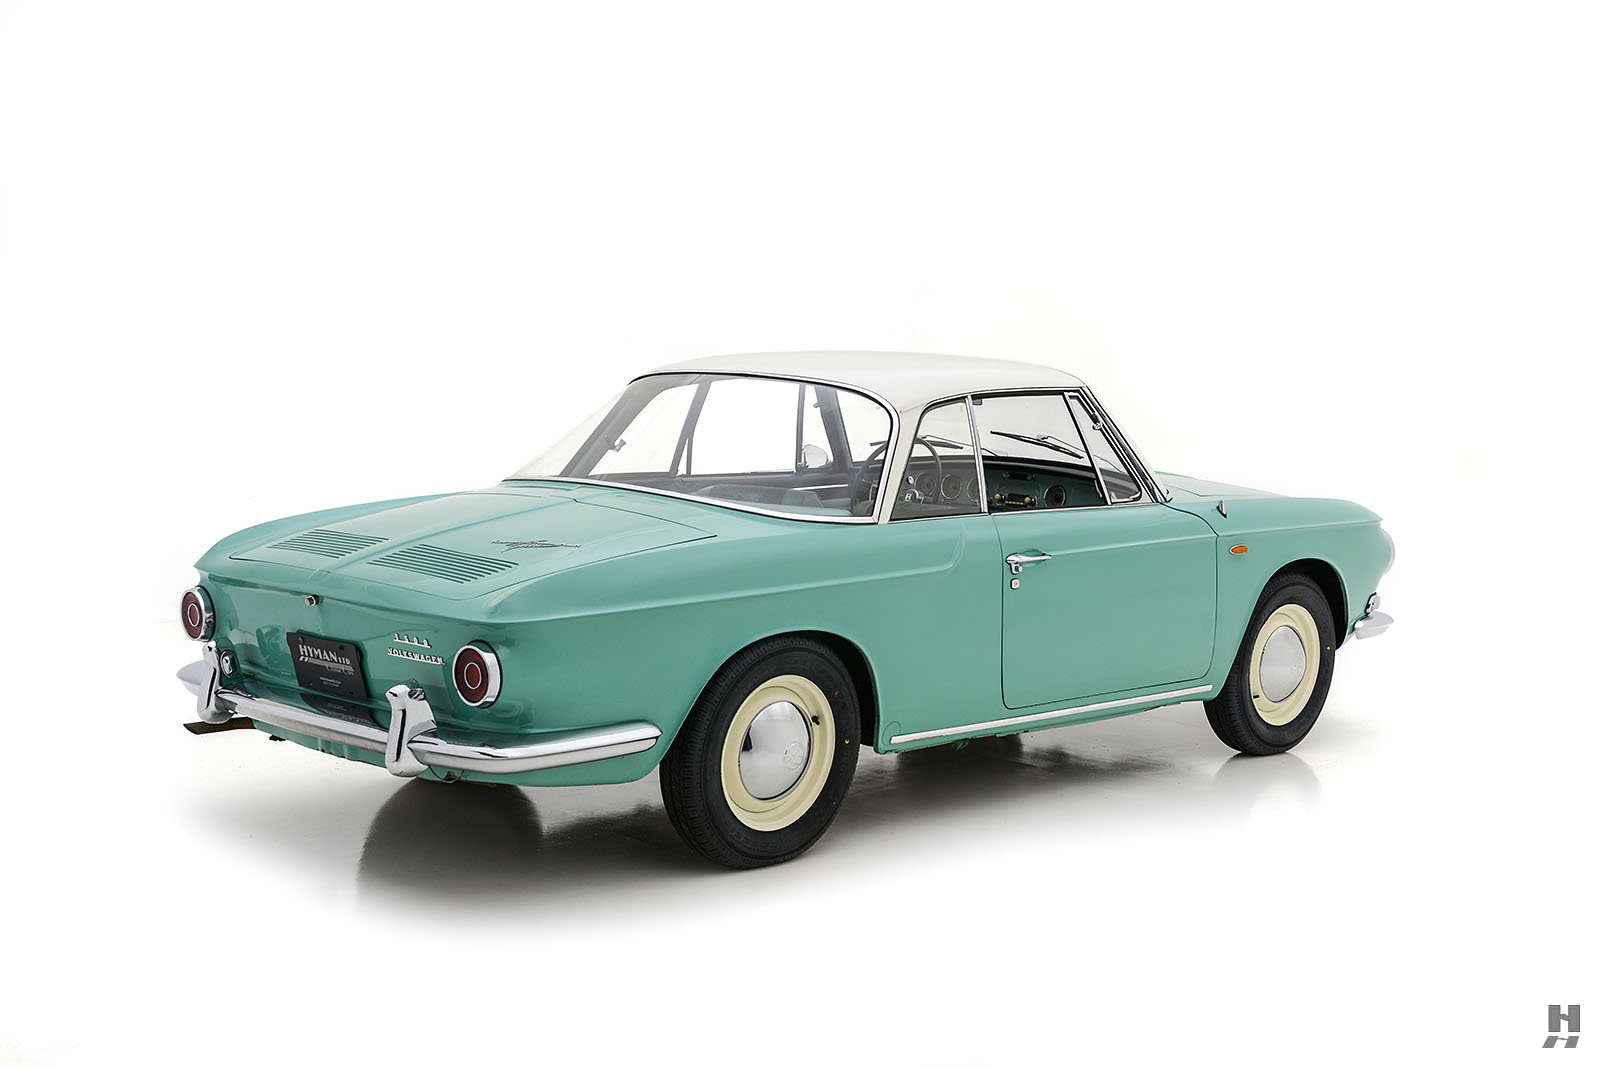 1963 Volkswagen Type 34 Karmann Ghia Coupe For Sale (picture 6 of 6)